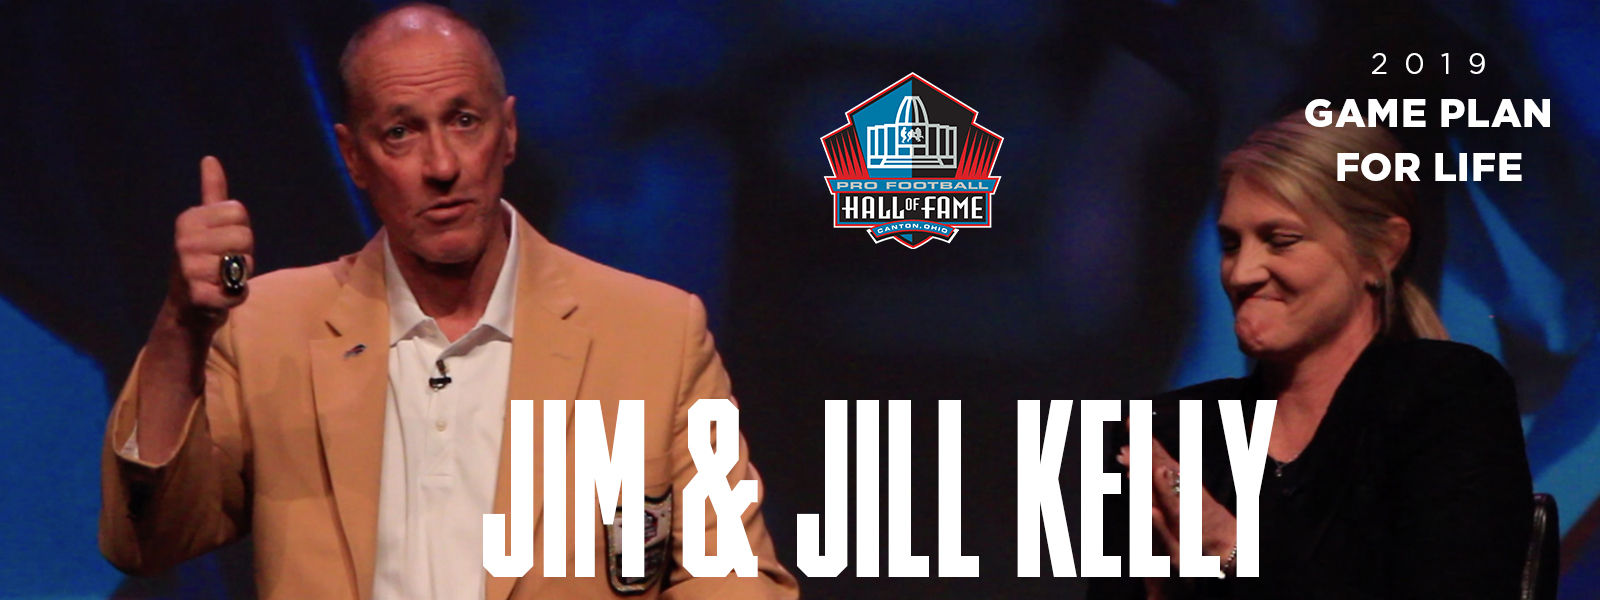 2019 Game Plan for Life featuring Jim & Jill Kelly